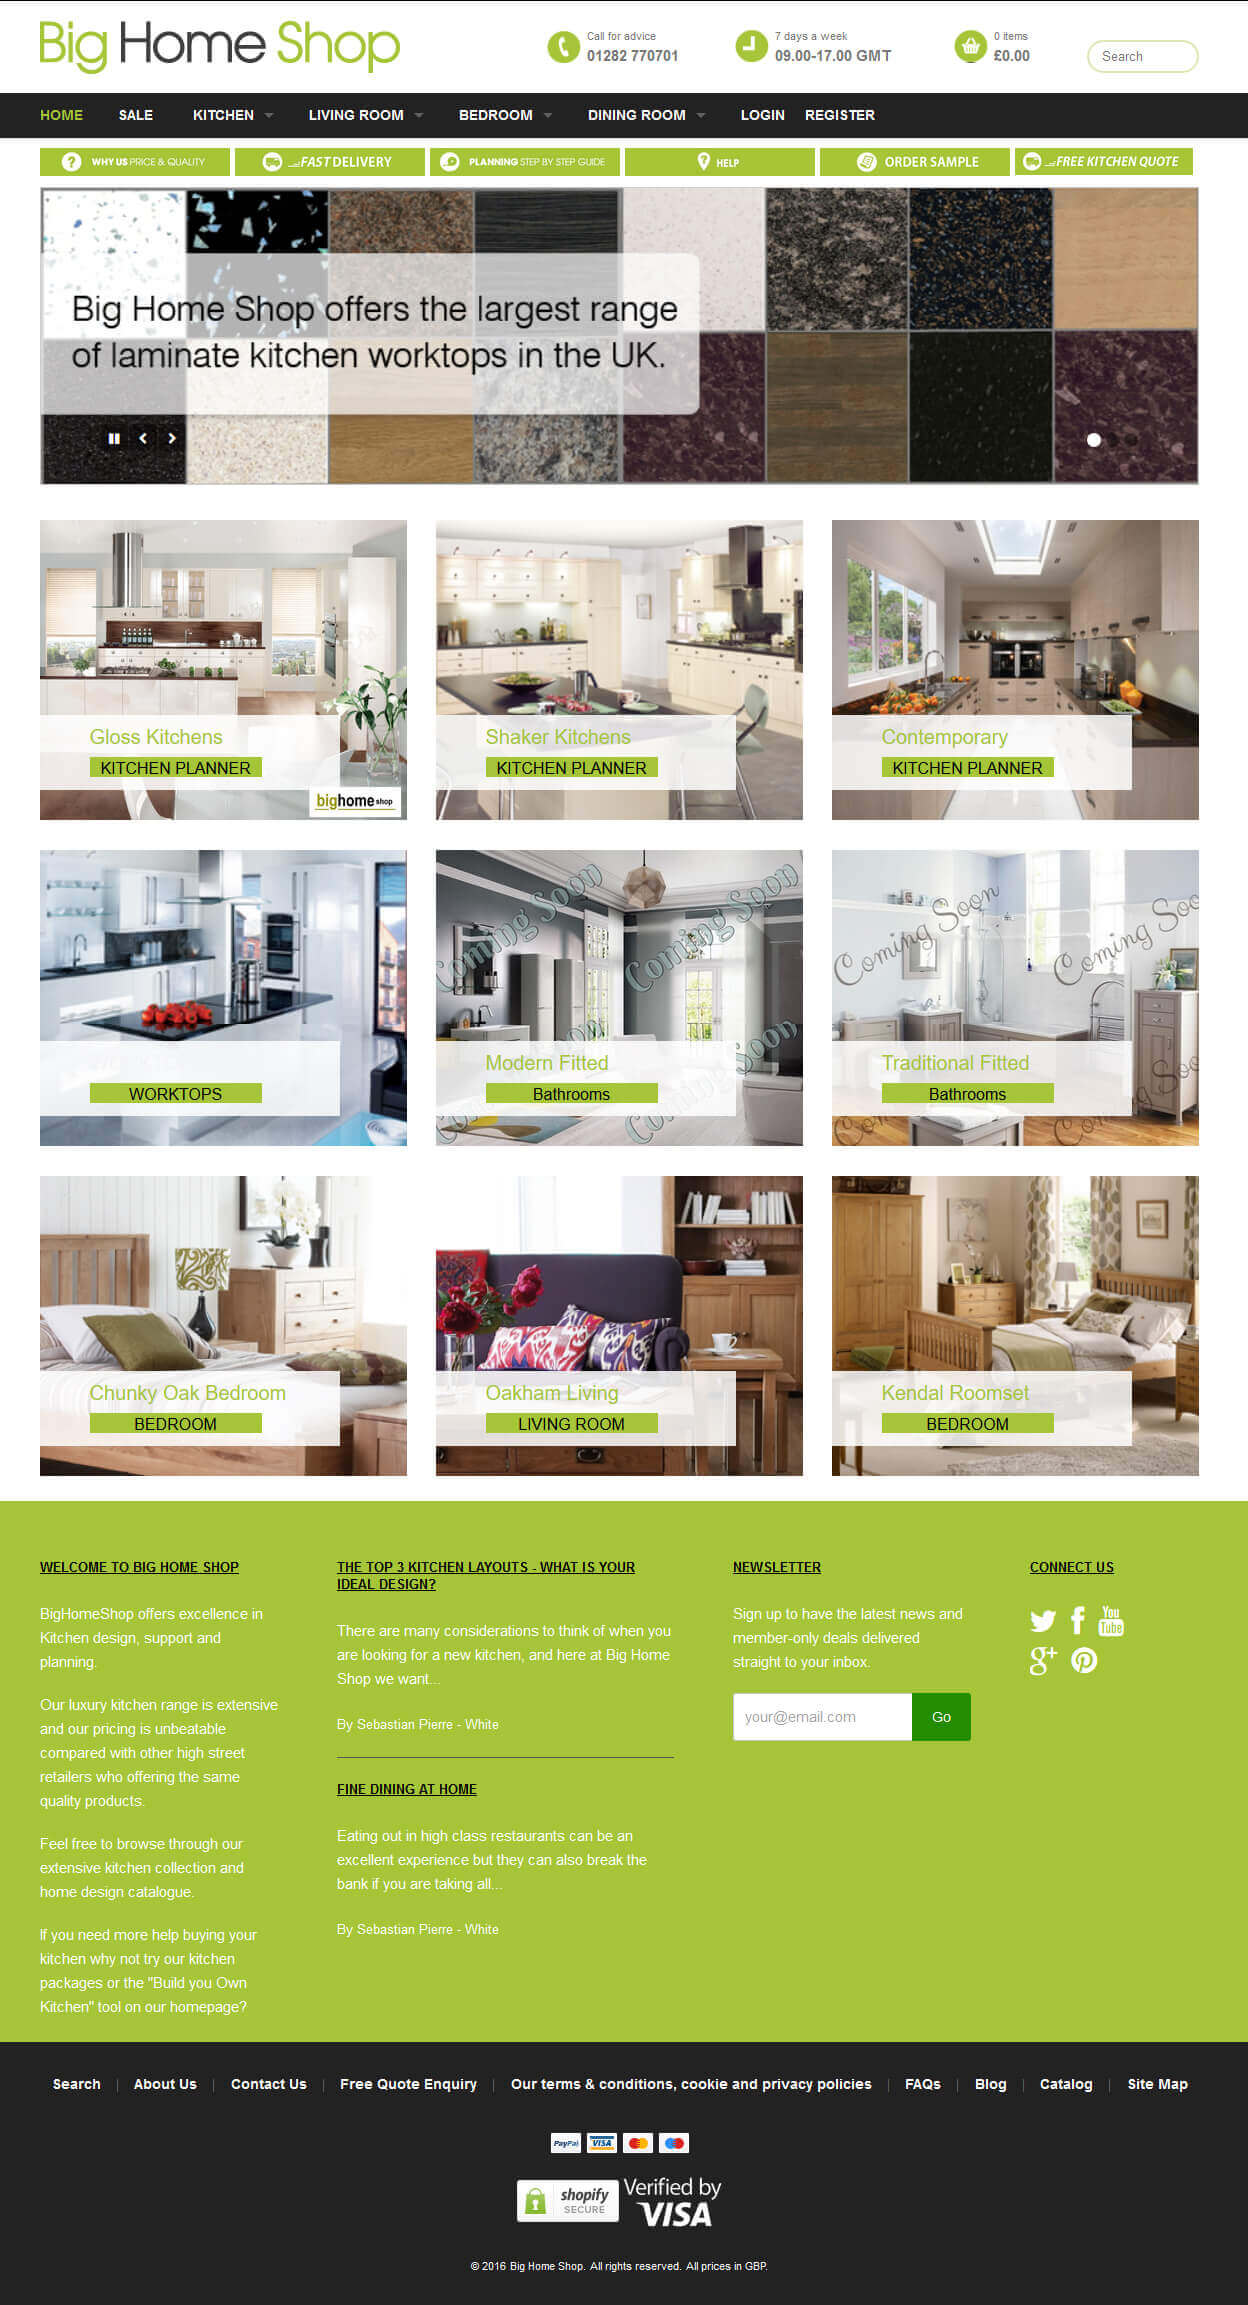 A Shopify Based Online Store to Sale Home Appliances in the UK